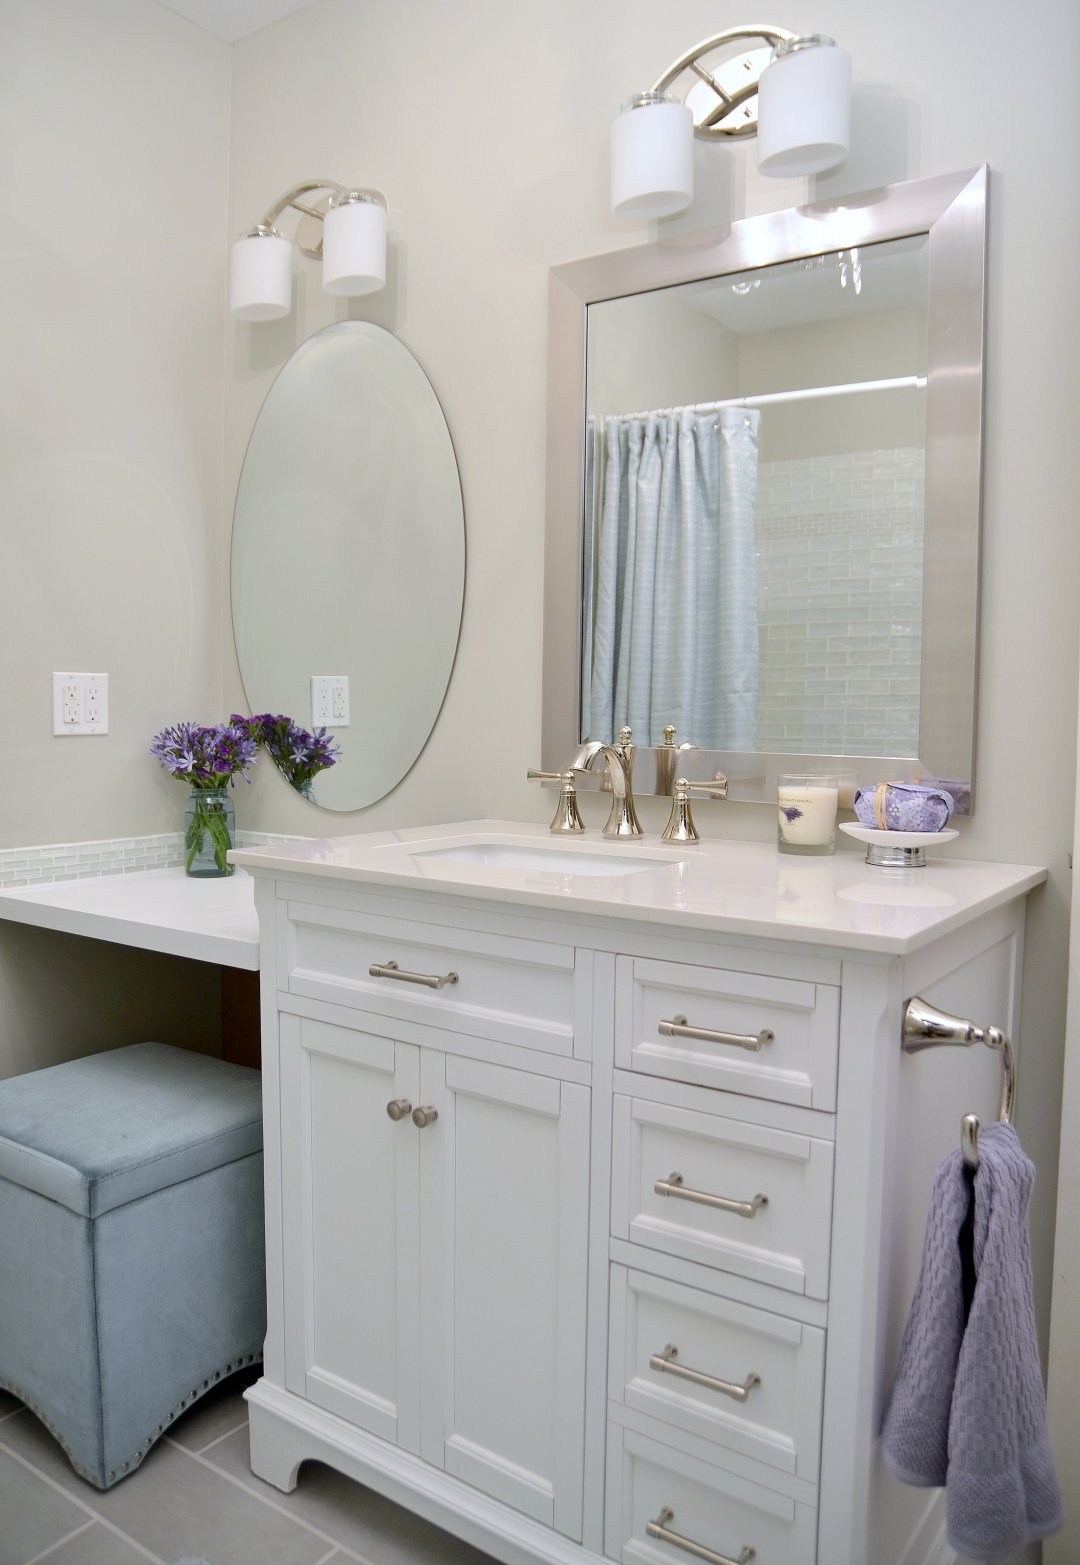 Lowe S Bathroom Makeover Reveal Beneath My Heart